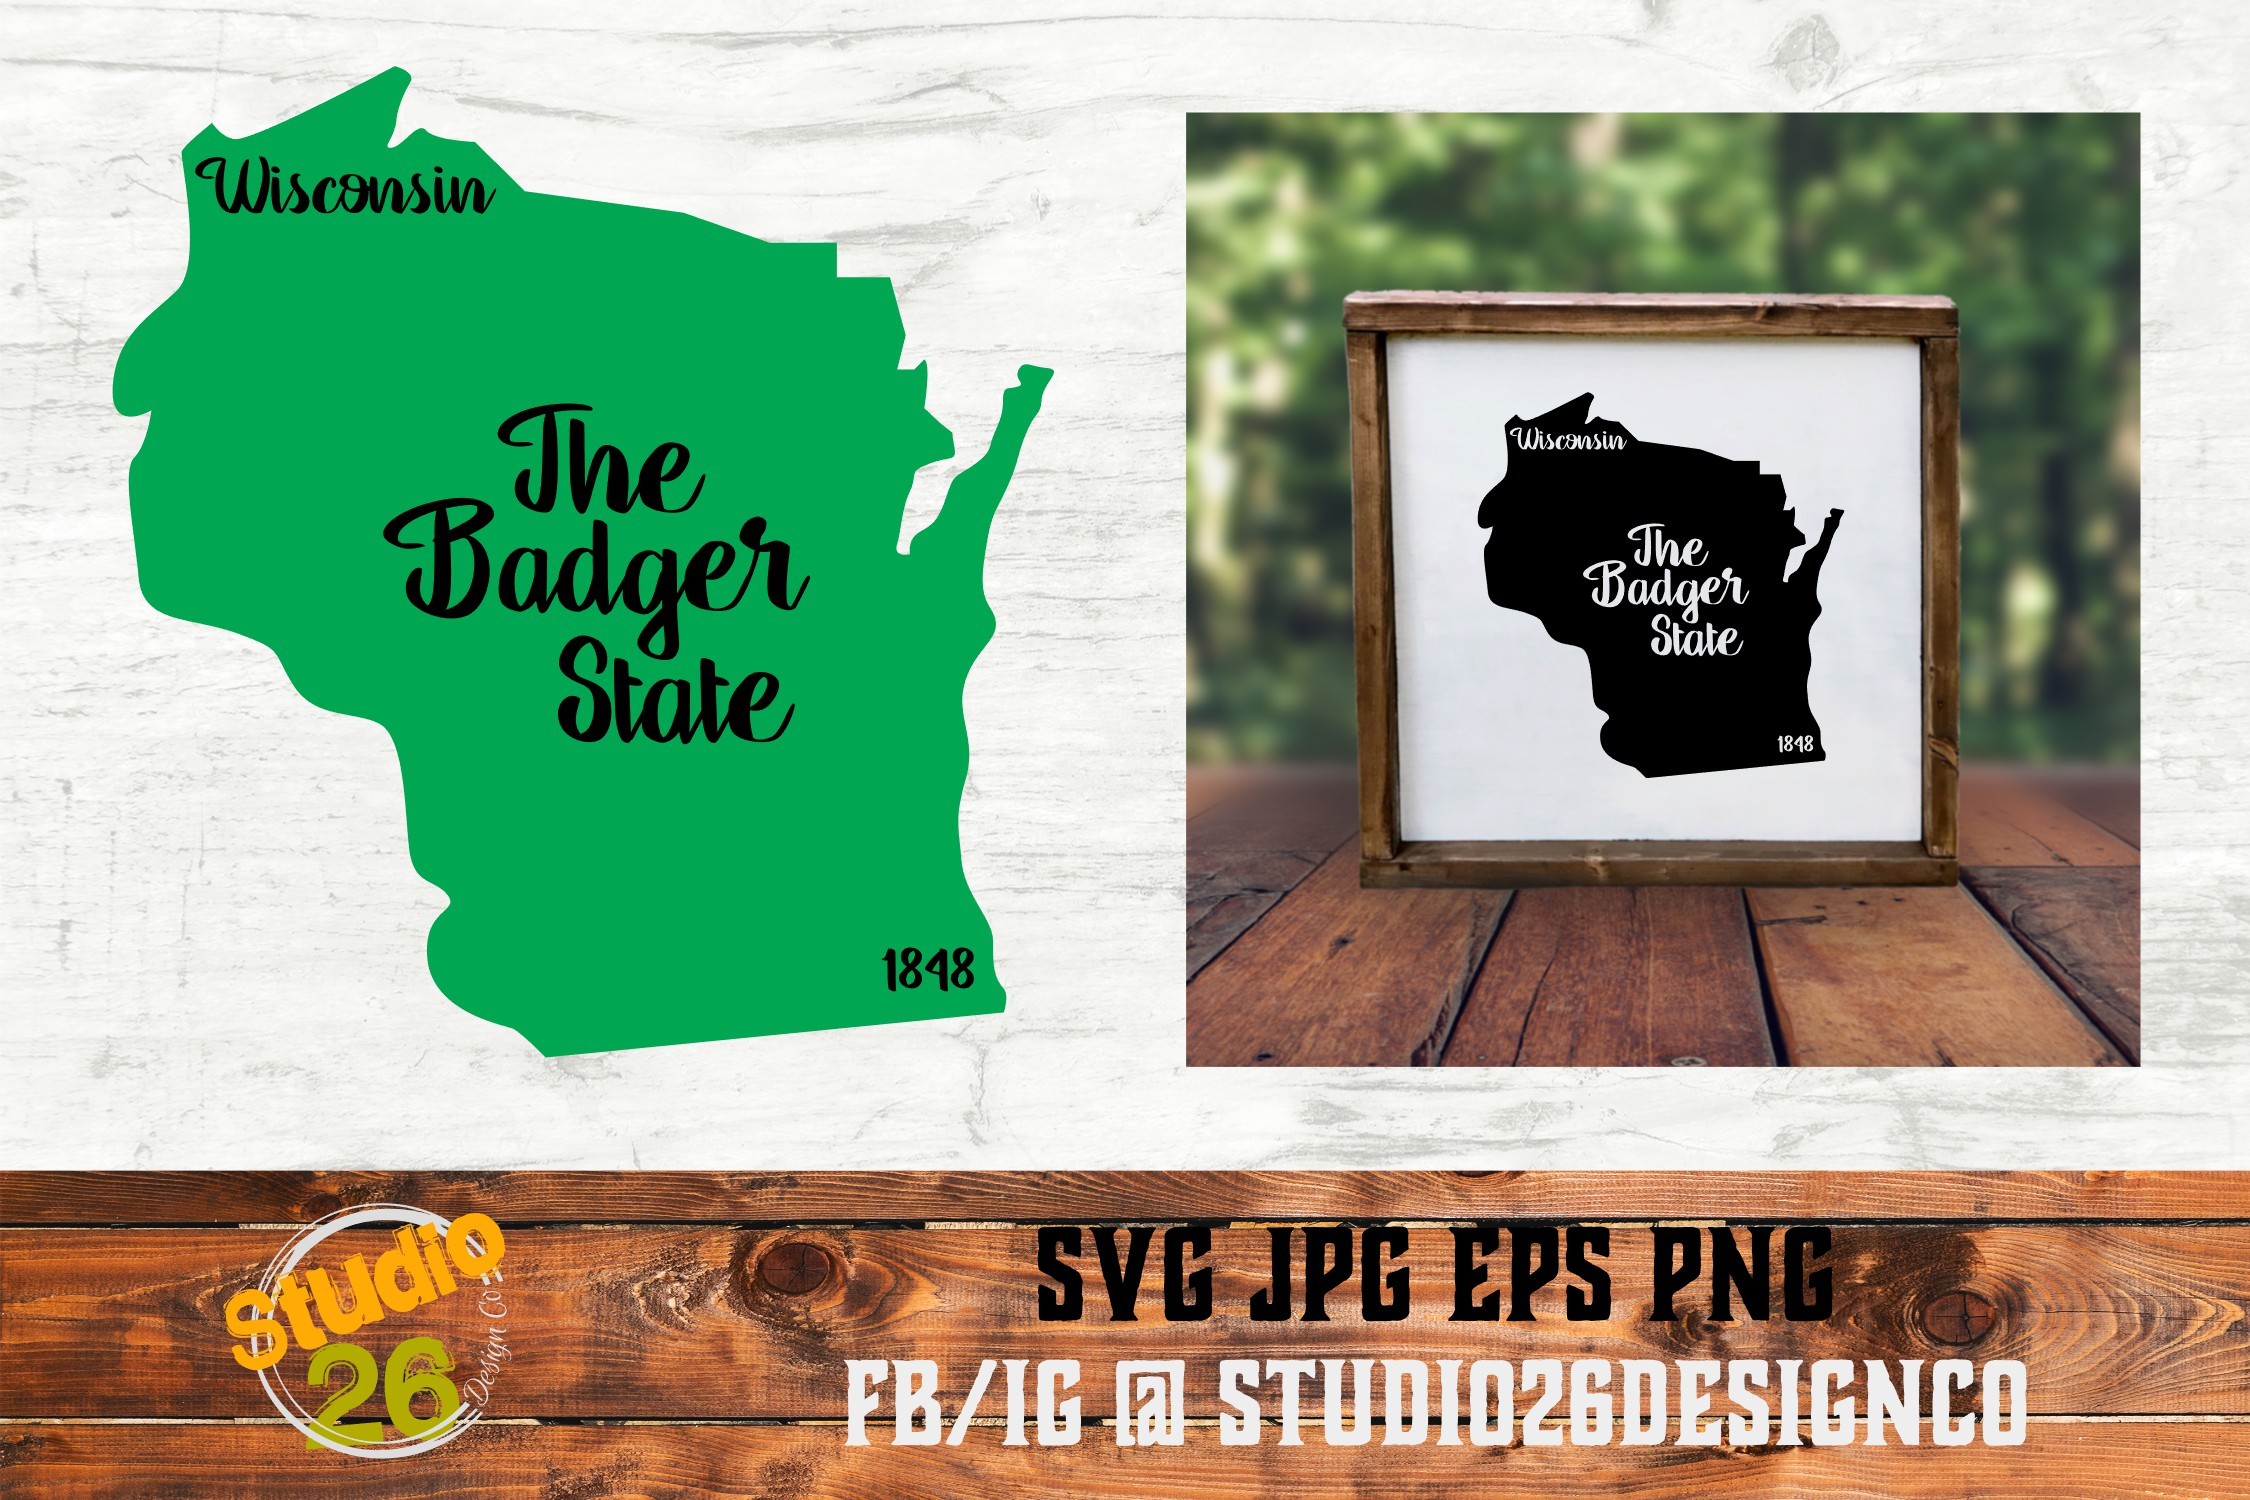 Wisconsin - State Nickname & EST Year - 2 Files - SVG PNG example image 1